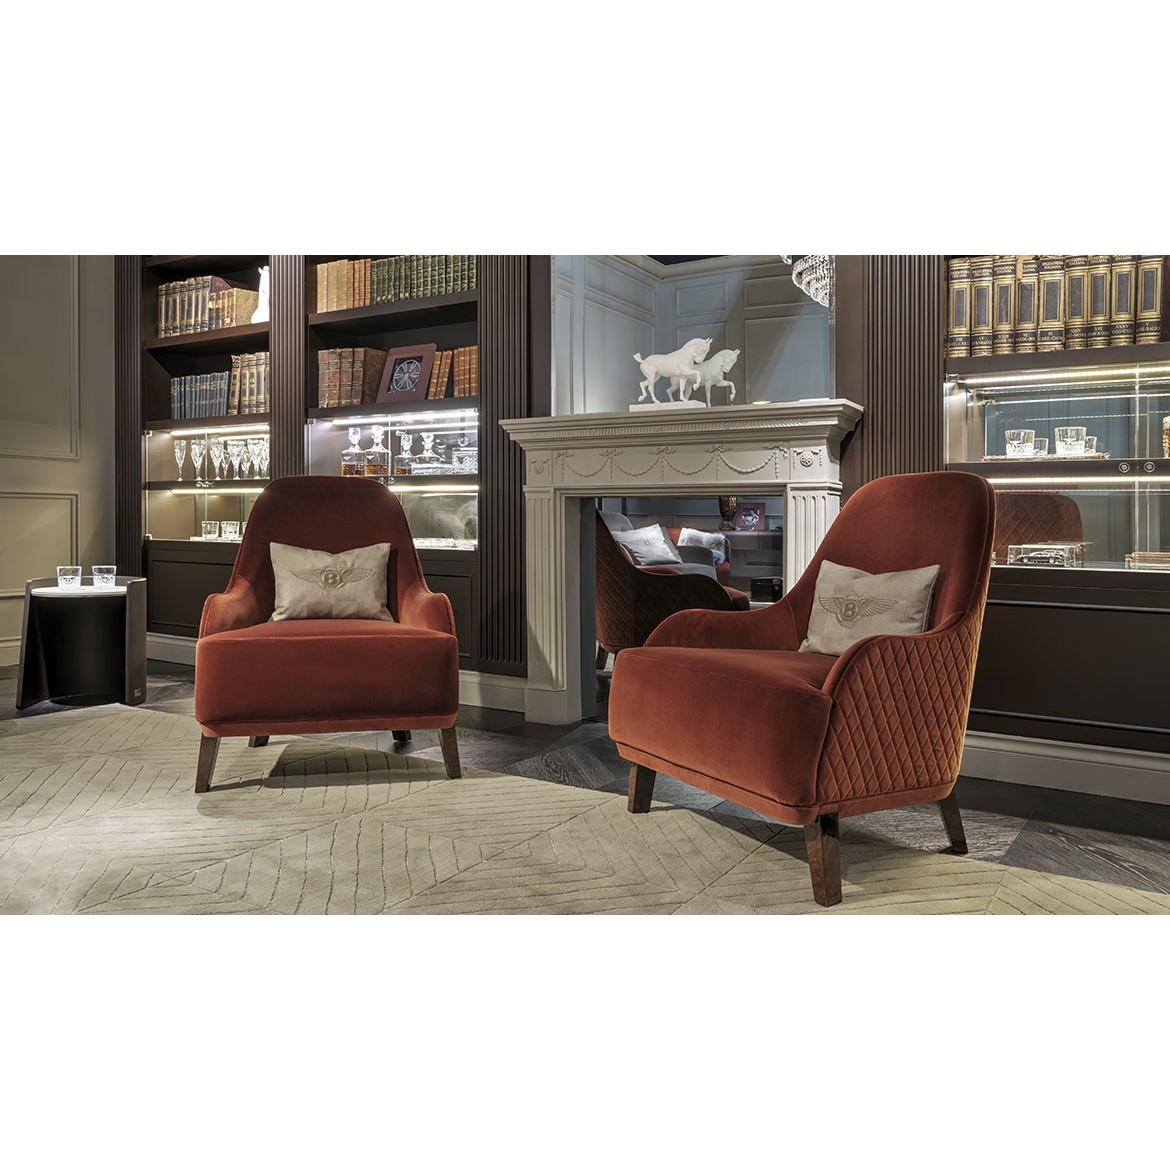 Кресло Roseberry Armchair, дизайн Bentley Home